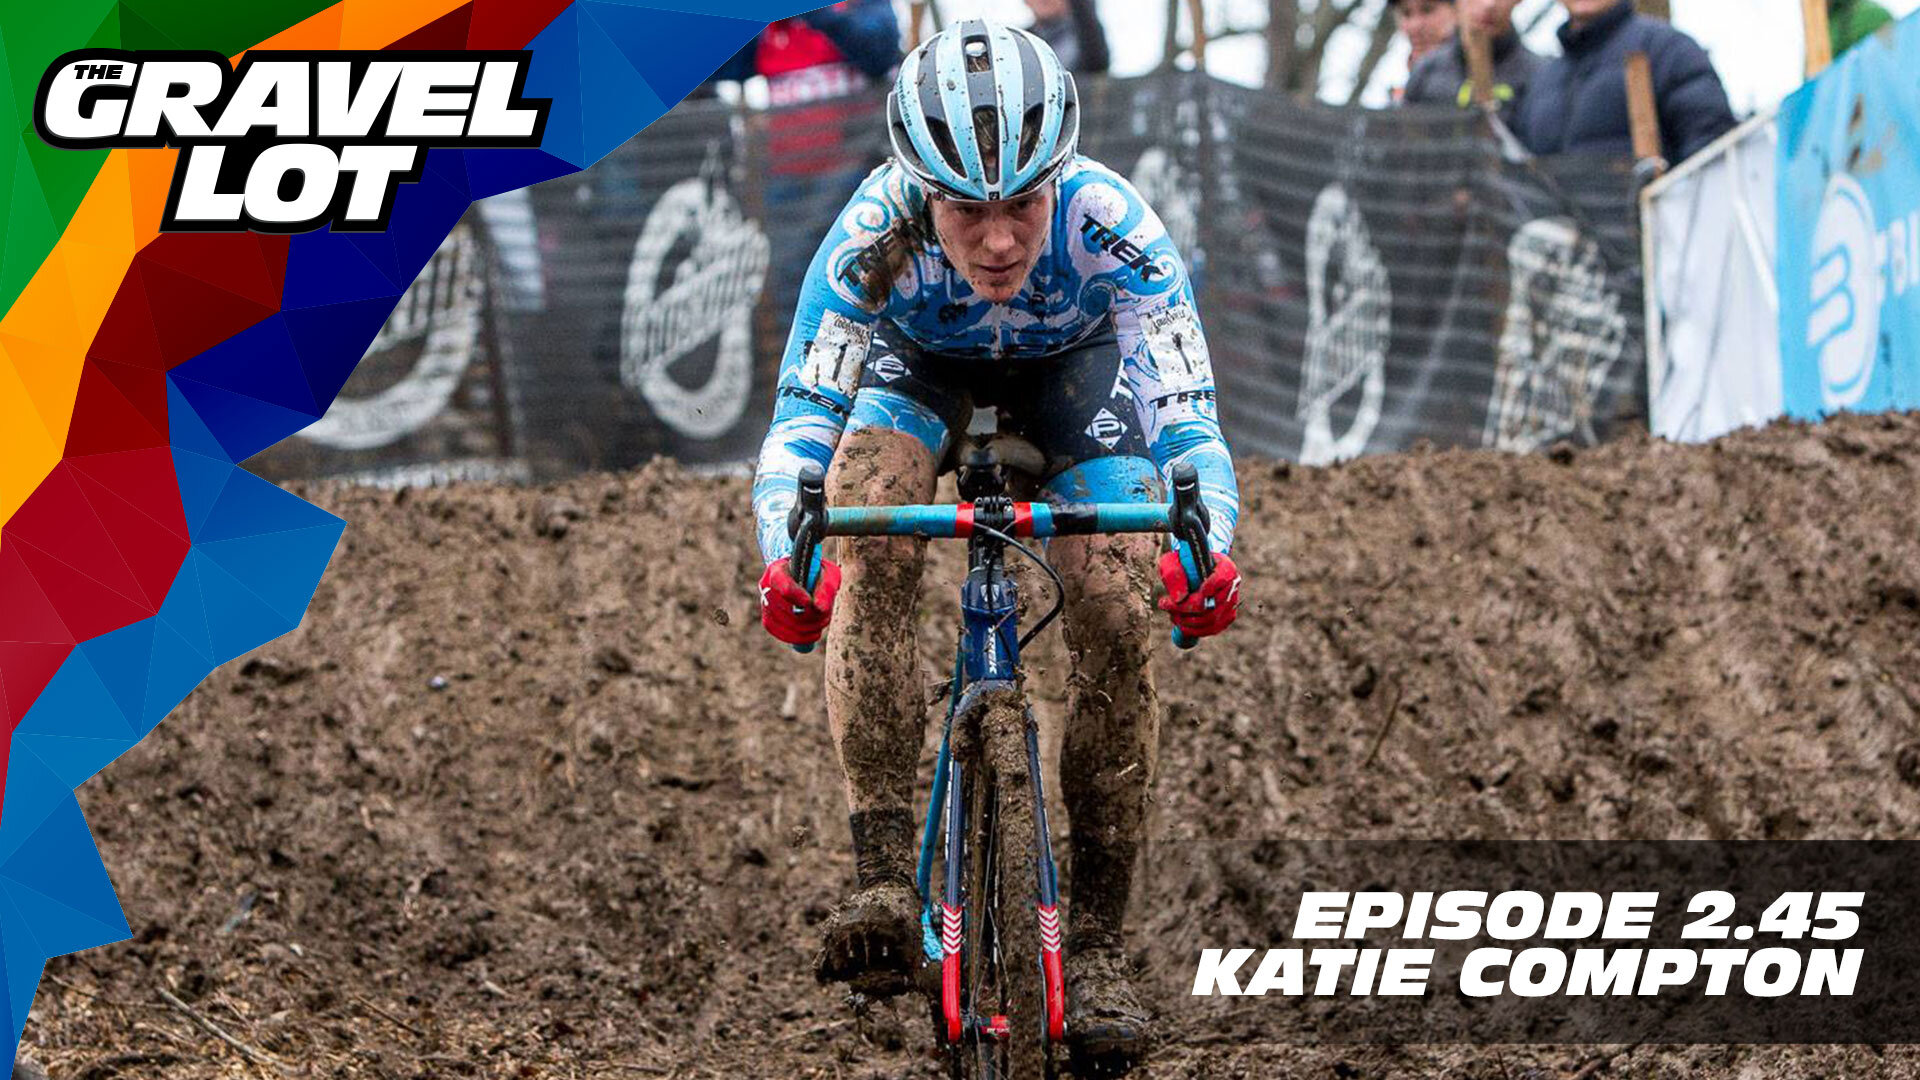 "You know her as the 15x Cyclocross National Champion, and she's arguably the greatest American cyclist of all time. In this week's episode from inside Trek HQ, we let her talk about stories you haven't heard about: Topics like growing up, living with a rare genetic disorder, and if she feels like she has ever found her personal limits. Photo: Kent Baumgardt  Subscribe to The Gravel Lot on the  Wide Angle Podium Network and become a member TODAY and get access to EXCLUSIVE bonus content.    Learn more about the WORX Hydroshot: Use code ""cleanbike"" at checkout for 15% off    WHOOP    Grimpeur Brothers Coffee: Purchase The Full Schleck or Hello Cyclocross Friends Espresso and support WAP today!    Handup Gloves: Use code ""PEBBLE$"" for 20% off EVERYTHING in store.    RoadID: Save $10 off ANY order over $20.    Be Free Ride Bikes:    Exclusive Preview of Unknown Country: One man's inspirational journey to the Dirty Kanza XL    Visit The Gravel Lot website for our latest podcast, Real Talk videos, Bonus Content, shop, social media, and everything in between.   Learn more about Undertipper and download their latest album ""Y'all"" at:  http://undertipper.bandcamp.com/"